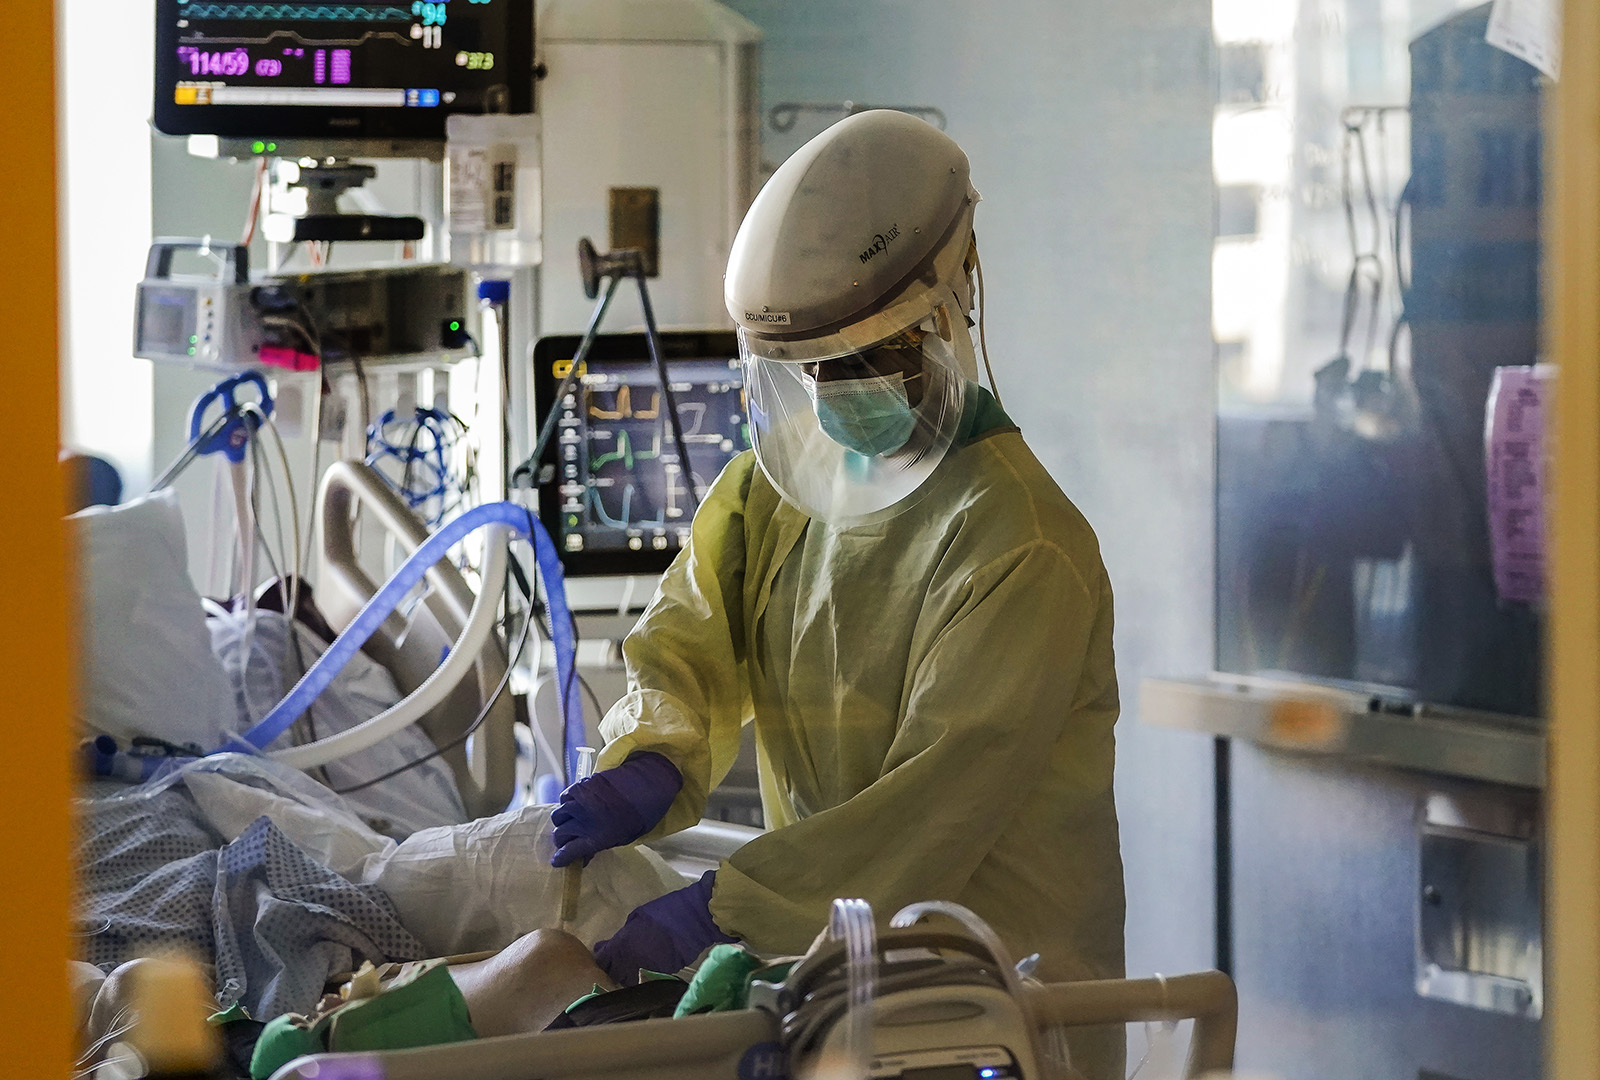 In this Wednesday, Jan. 13, 2021 file photo, a health care worker tends to a Covid-19 patient in the intensive care unit at Santa Clara Valley Medical Center during the coronavirus pandemic in San Jose, California.